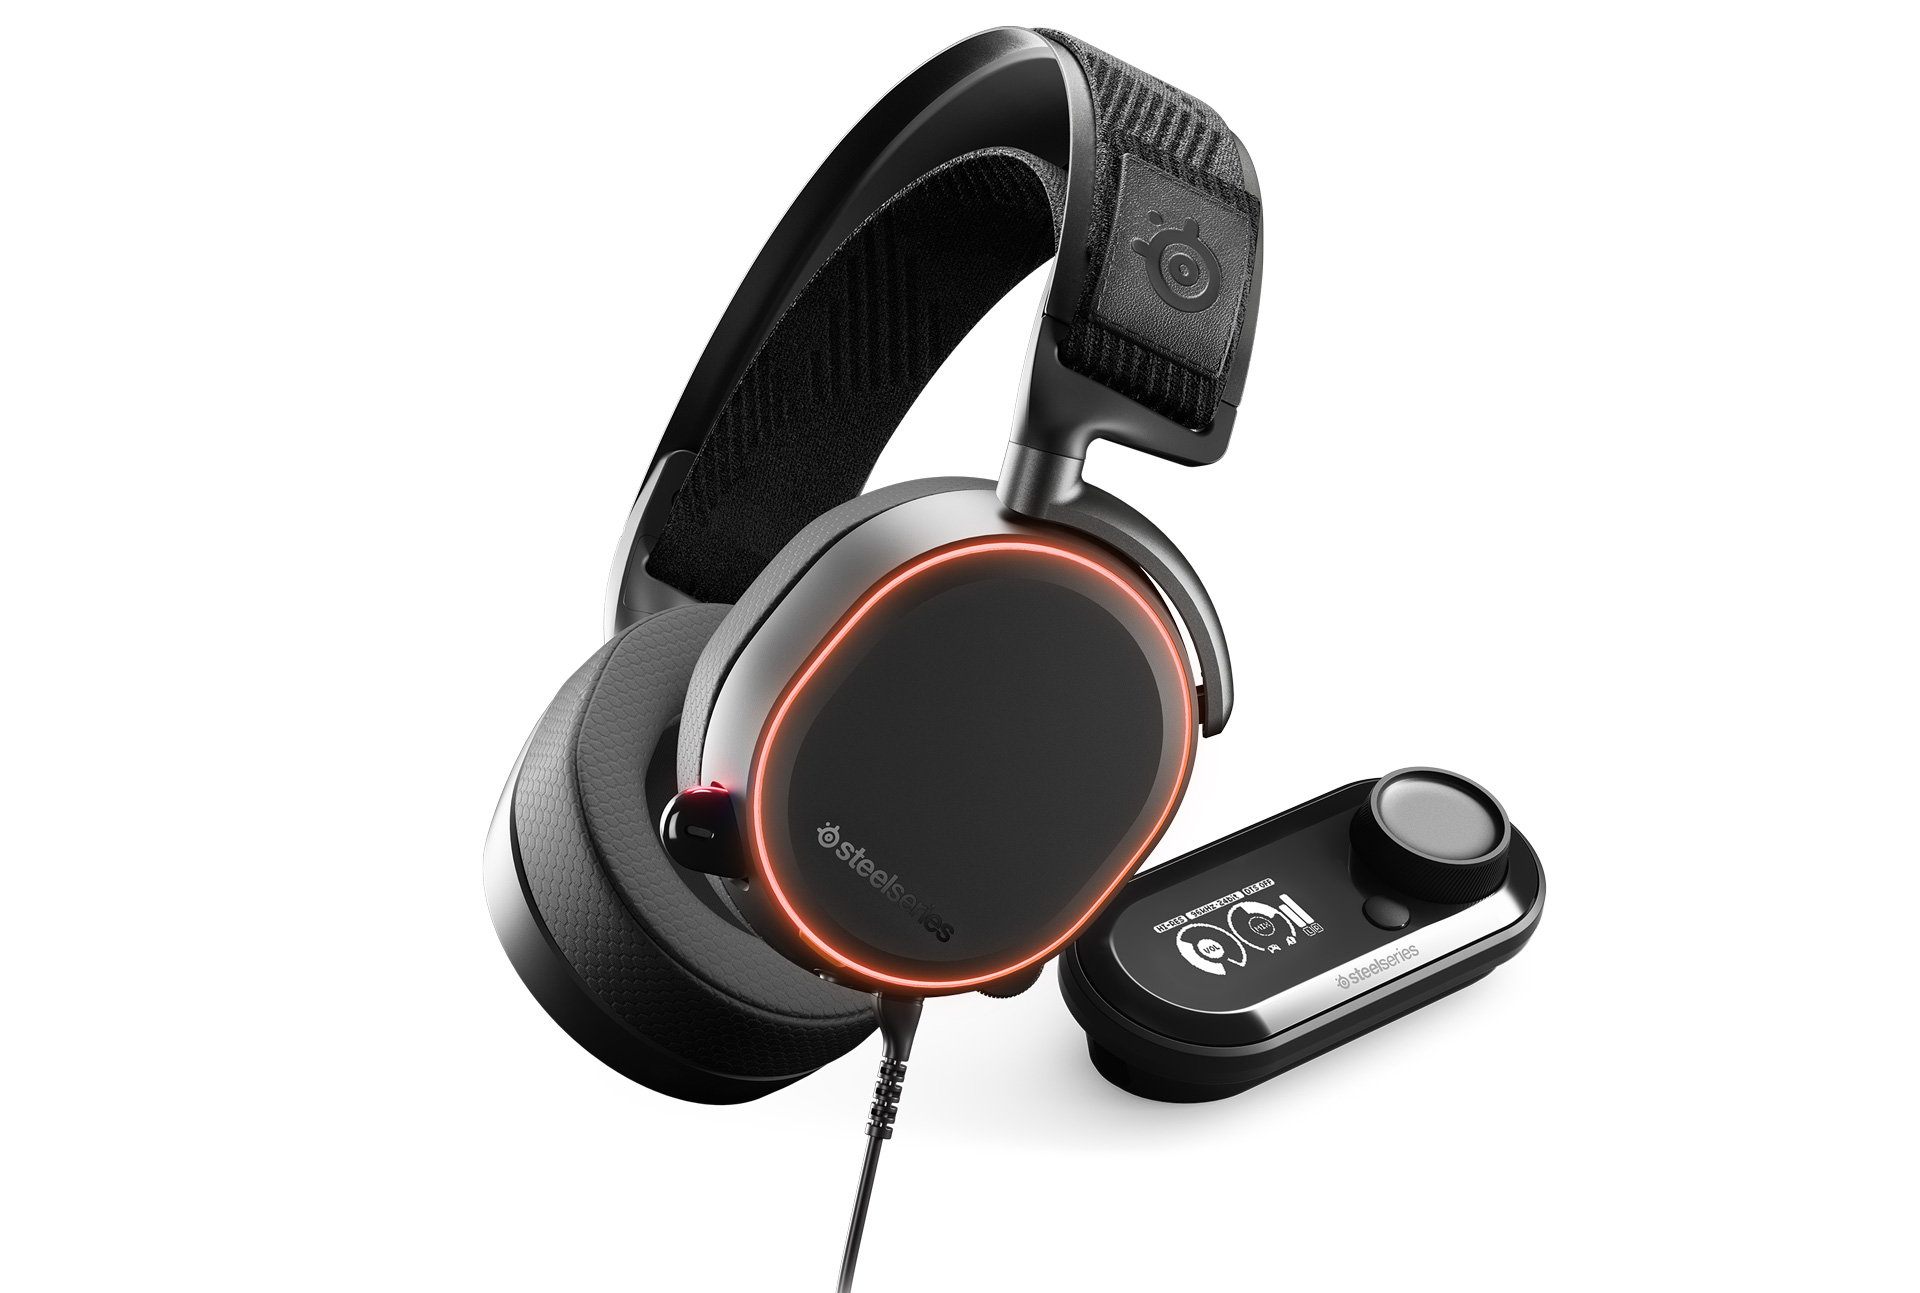 Steelseries Interview Jacob Wolff Petersen Founder Siberia 840 Wireless Bluetooth Of Course Doesnt Occupy The Premium Gaming Space By Itself Quizzed On How Company Stands Out From Competitors Like Corsair Razer